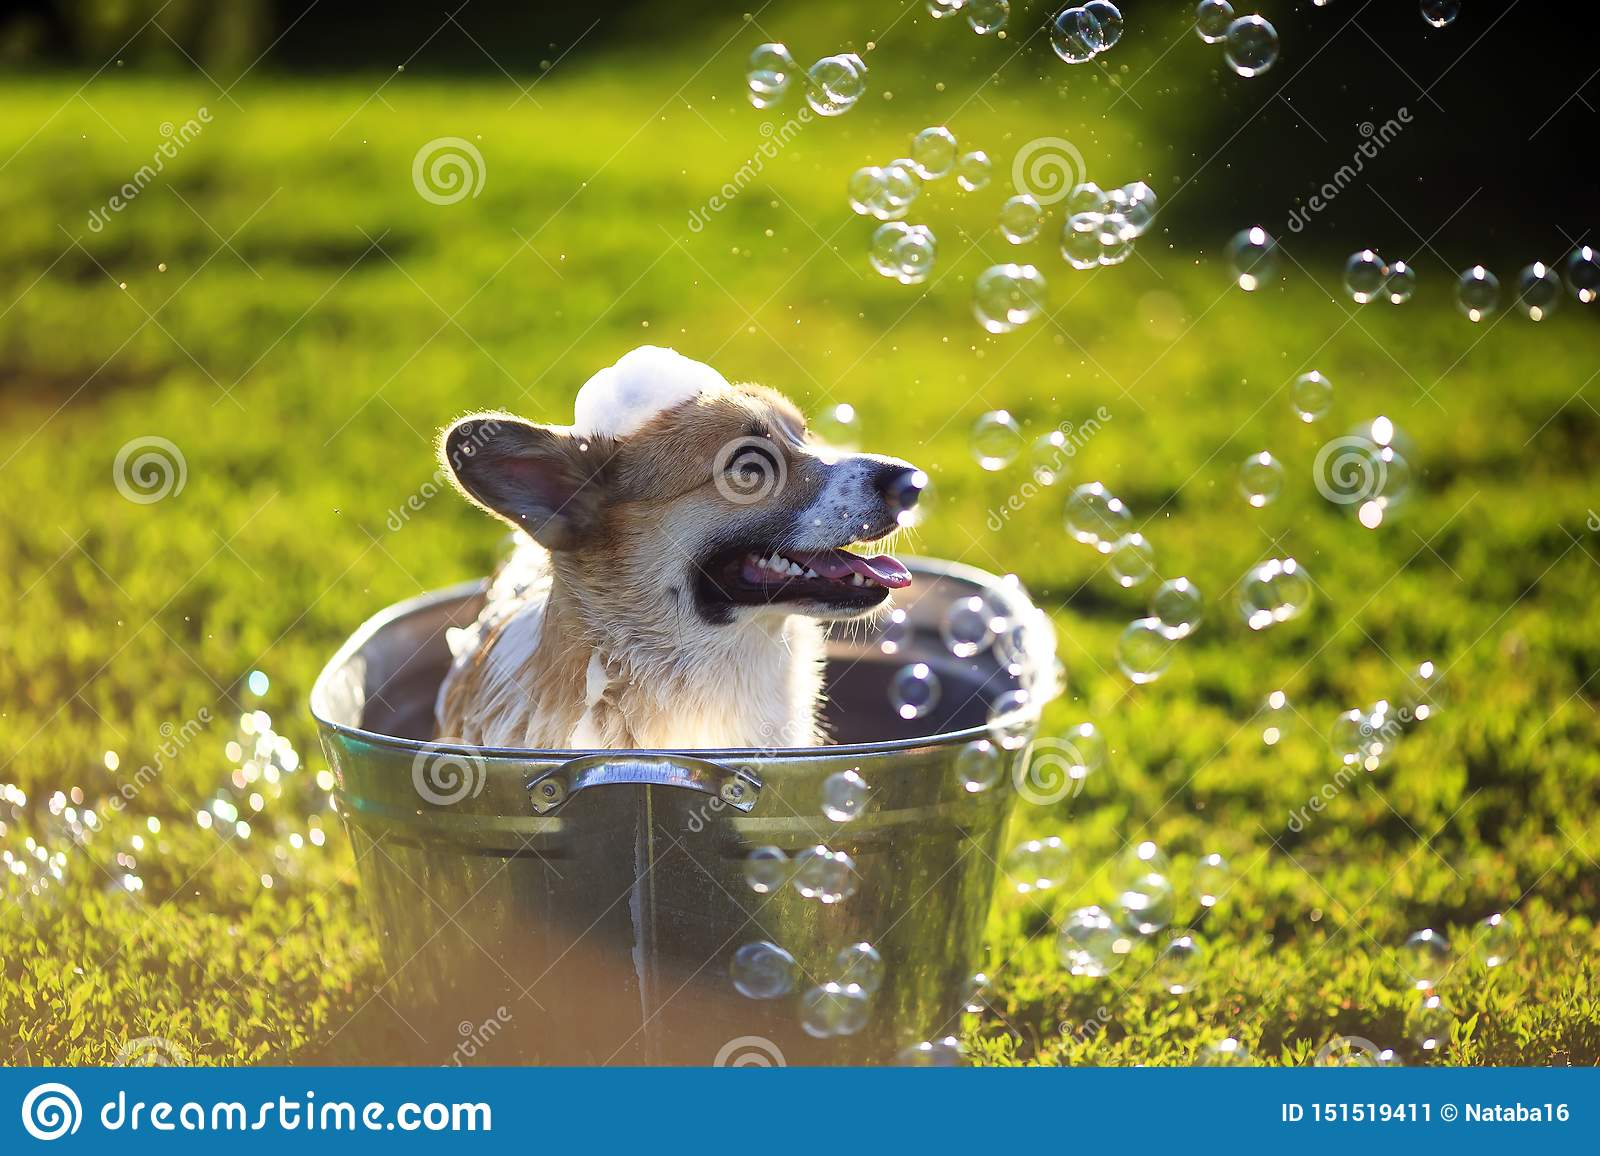 Cute Funny Dog Puppy Corgi Washes In A Metal Bath And Cools Outside In Summer On A Sunny Hot Day In Shiny Foam Bubbles Stock Image Image Of Ears Green 151519411